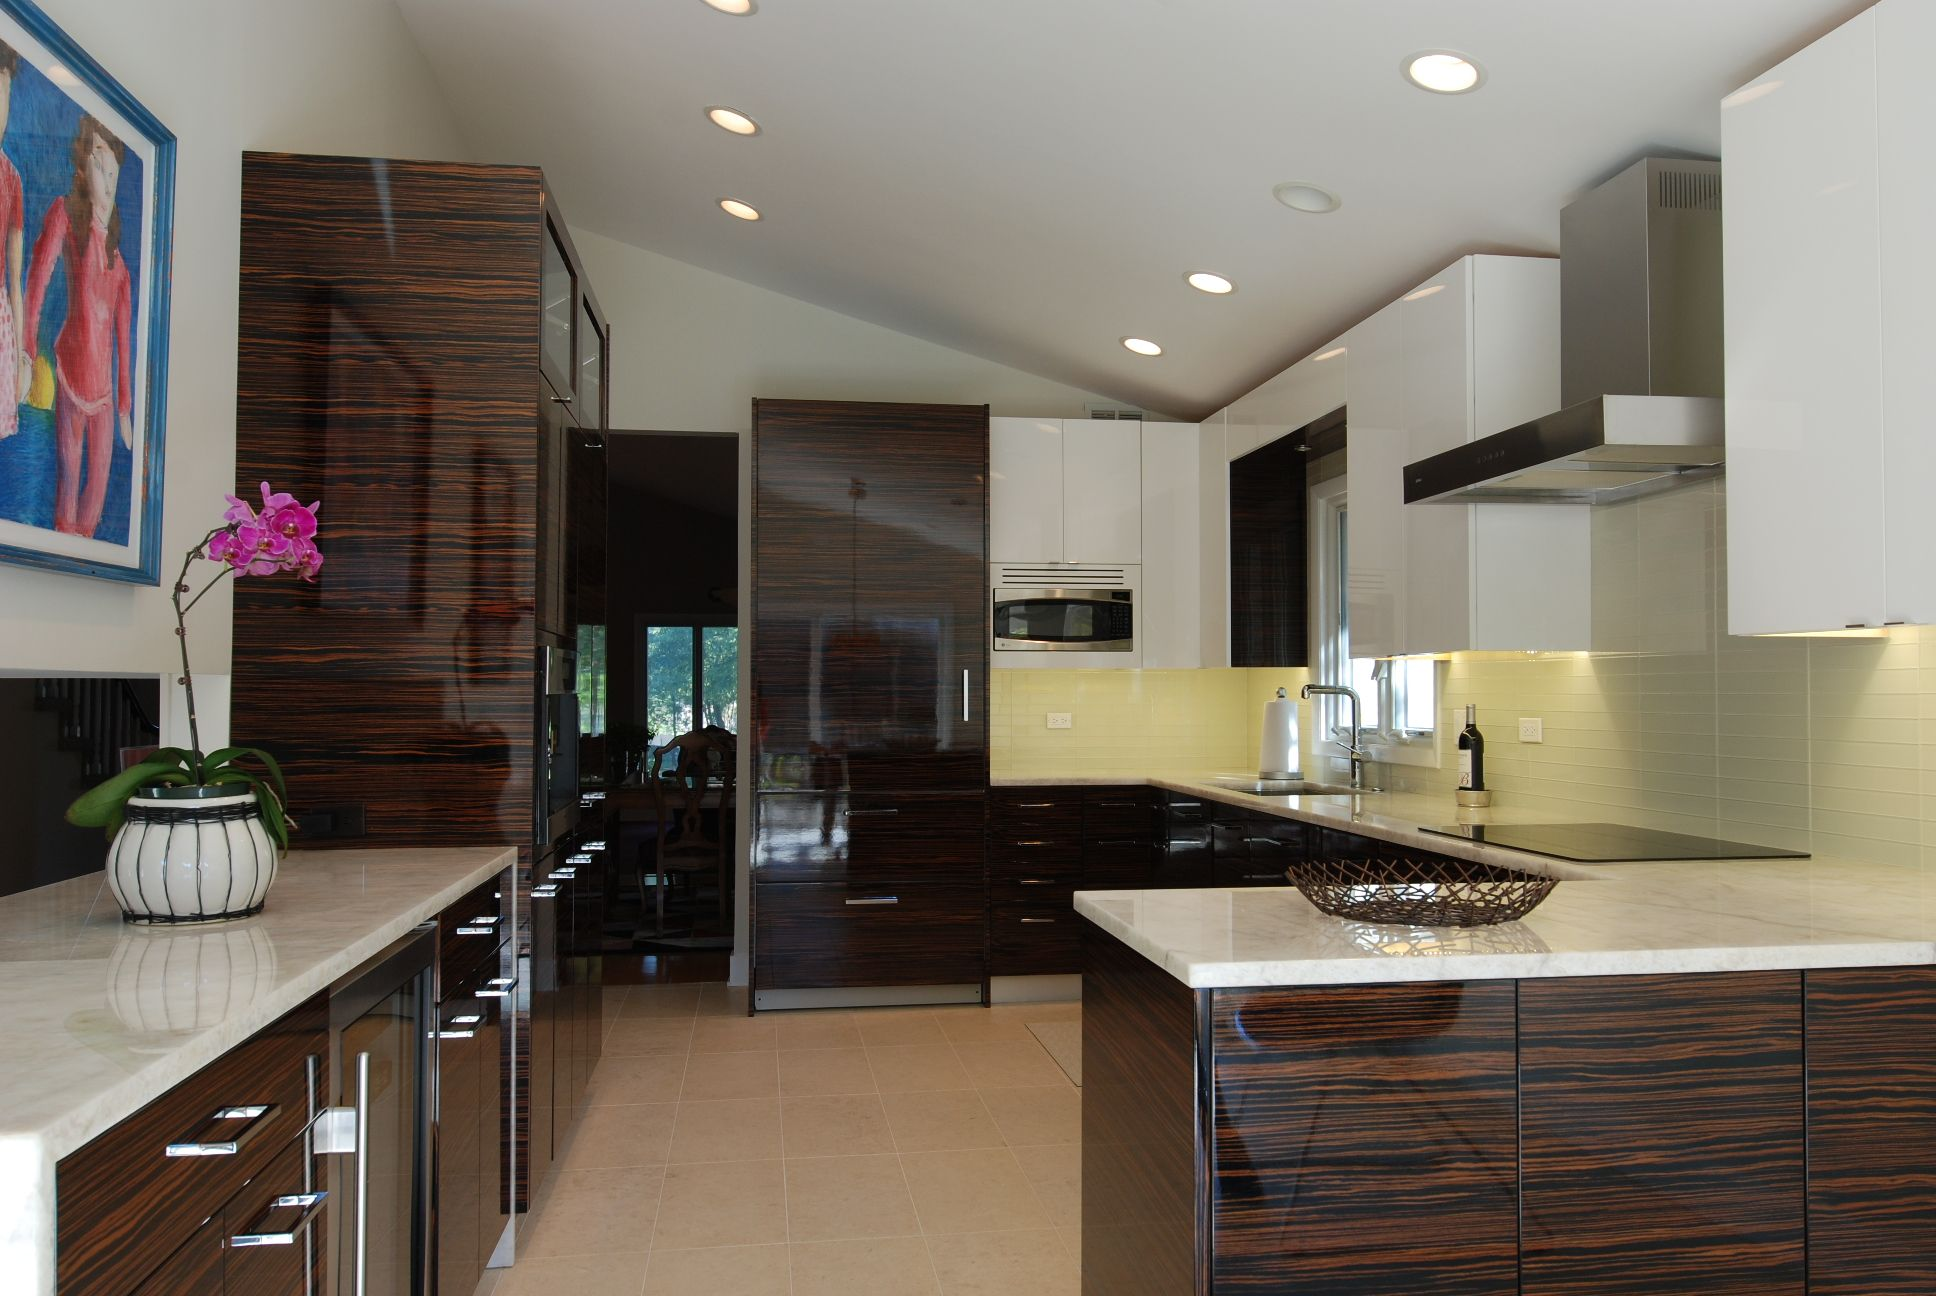 Zebra wood kitchen cabinets - Natural Zebra Wood Cabinets Google Search Ideas For The House